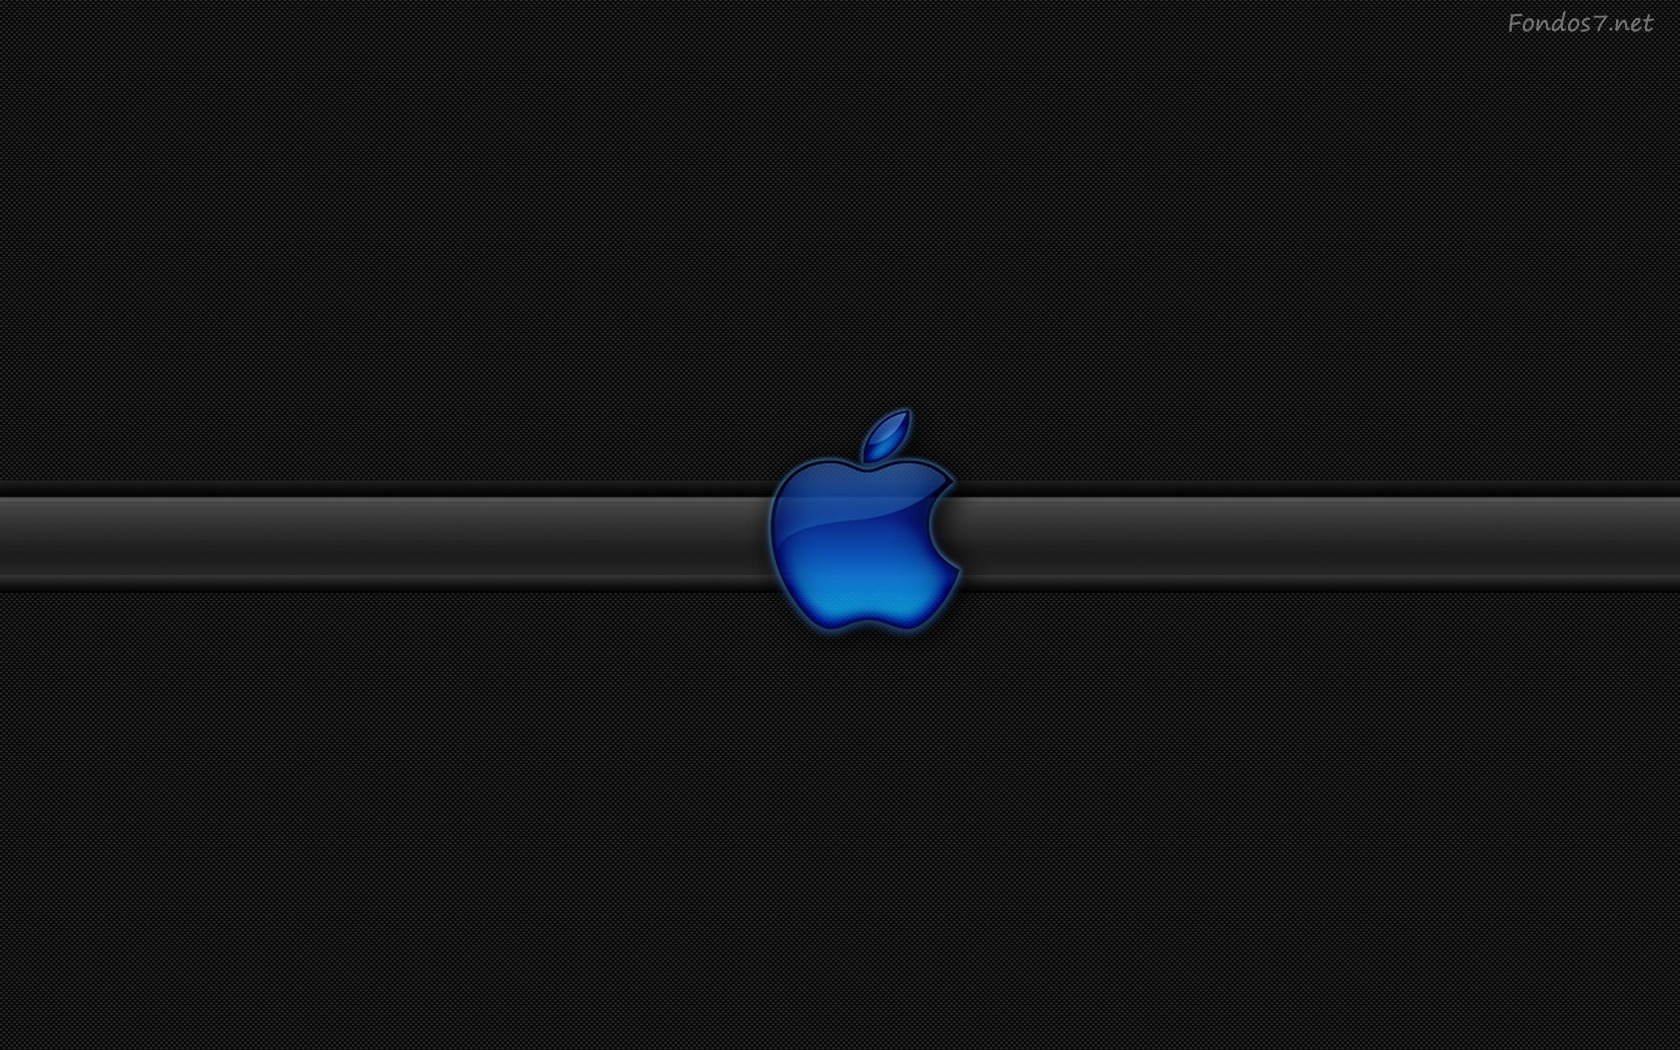 Descargar Fondos de pantalla logo apple azul hd widescreen Gratis 1680x1050